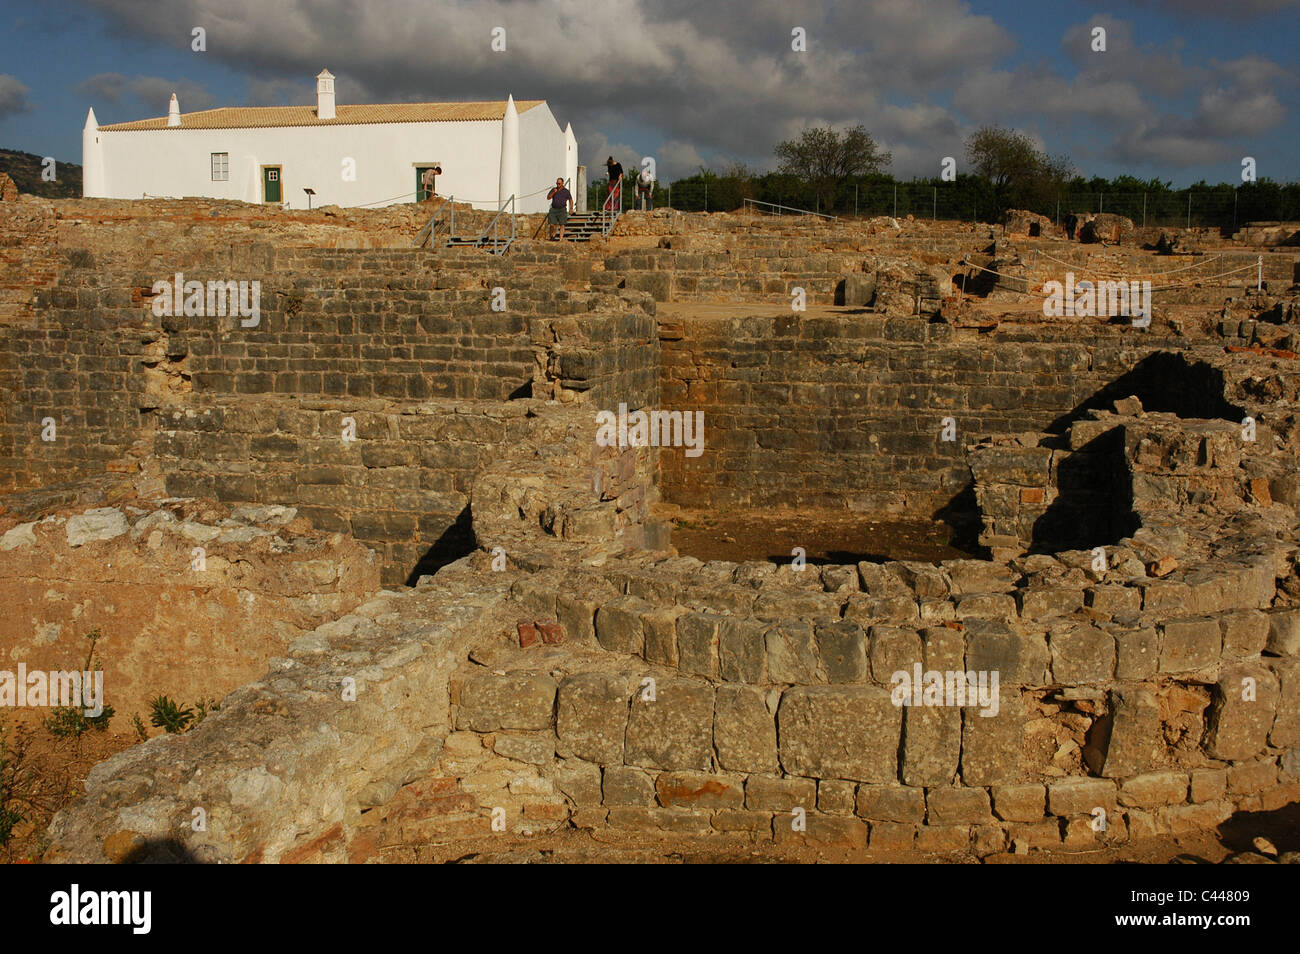 Ruins of Milreu. Roman Villa (1st - 4th century A.D.). In the foreground, the Baths next to a 16th century house. Stock Photo